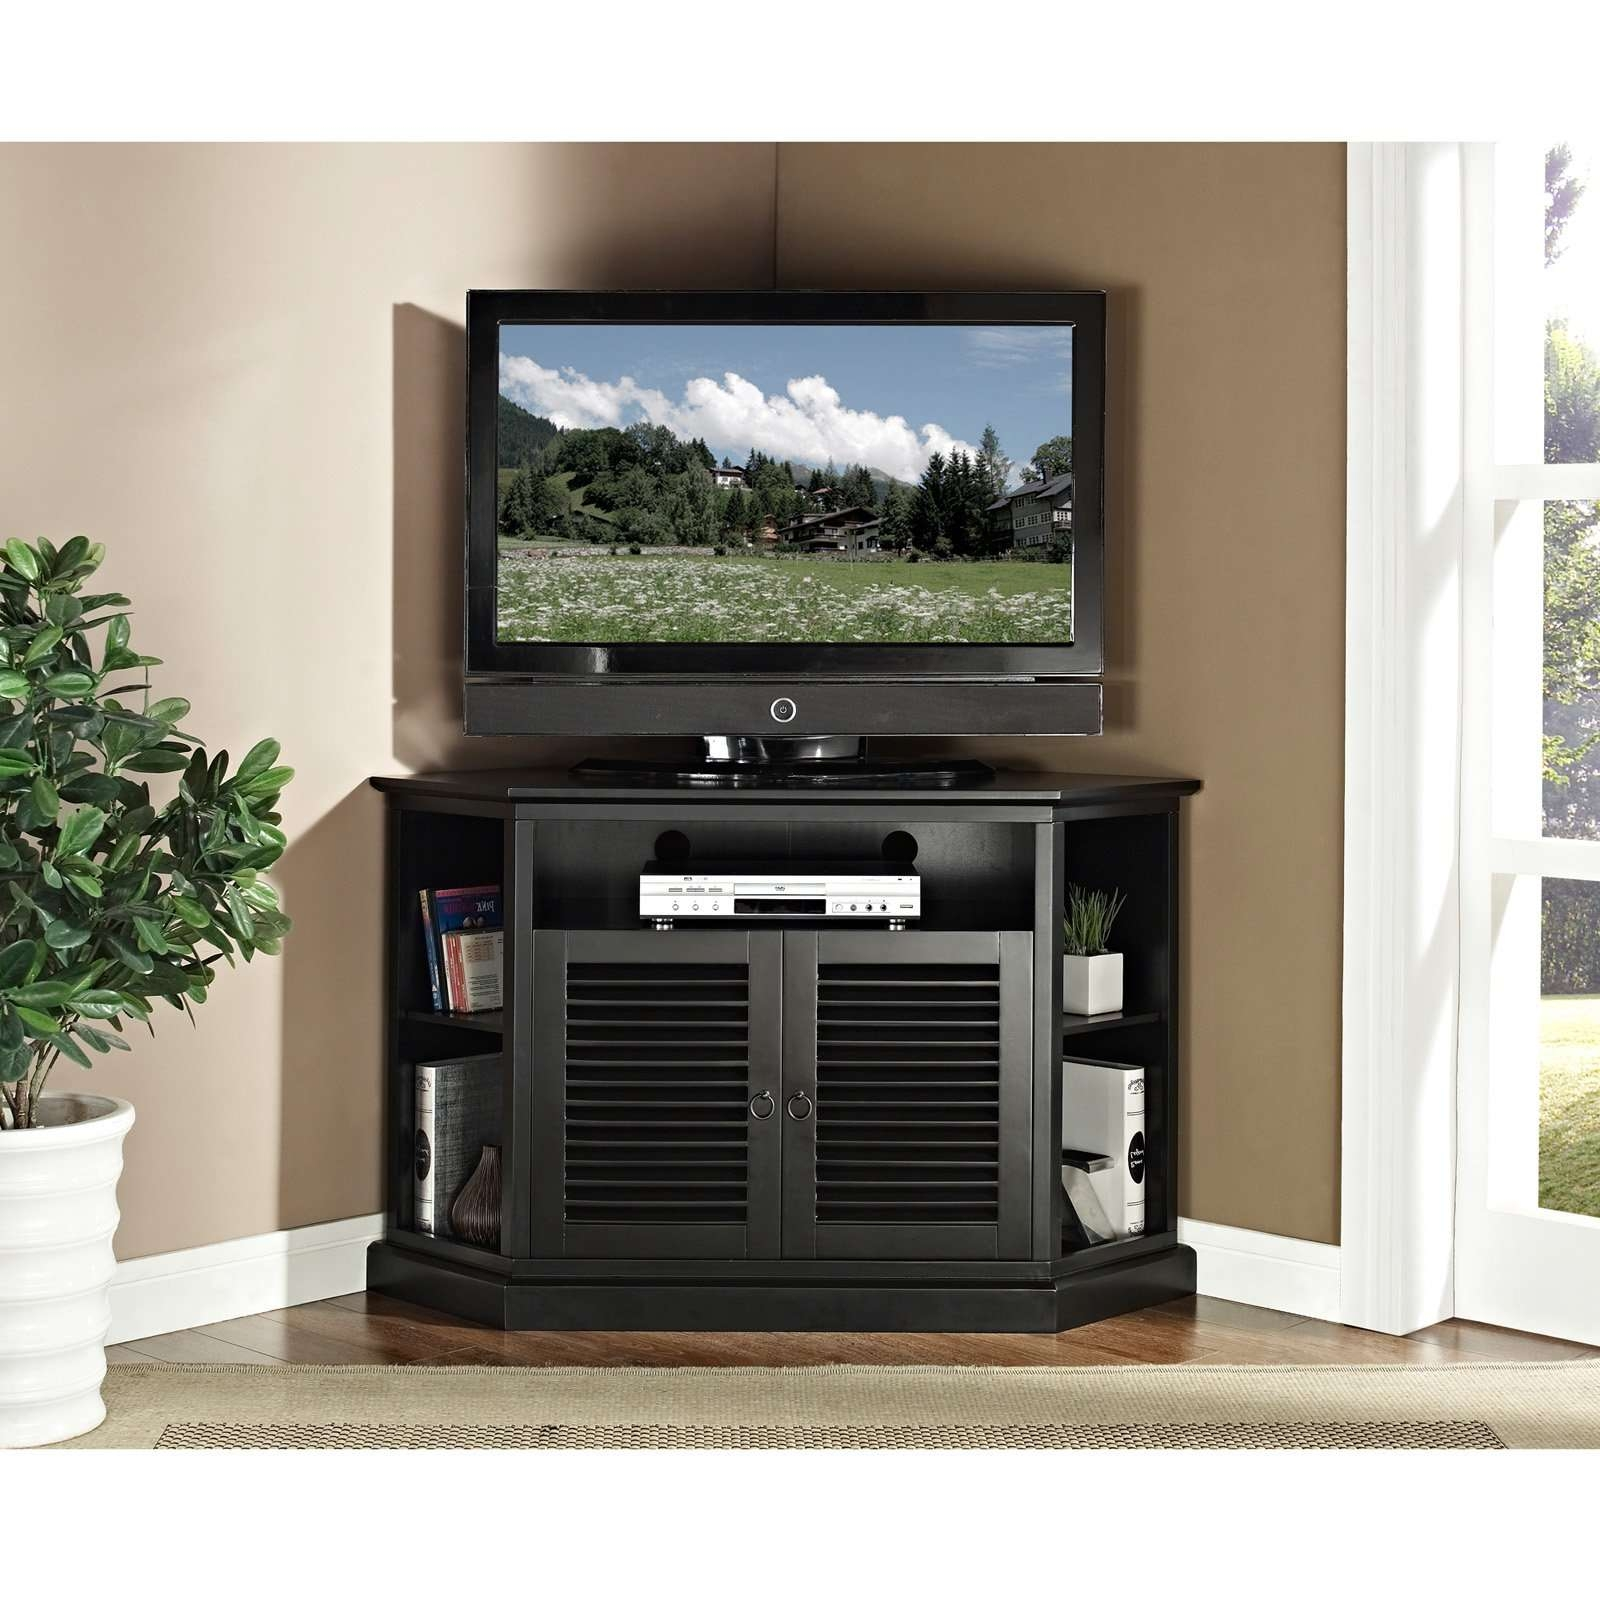 Black Tv Stand Cabinet With Wooden Doors And Corner Shelf For For Corner Tv Cabinets For Flat Screens With Doors (View 14 of 20)